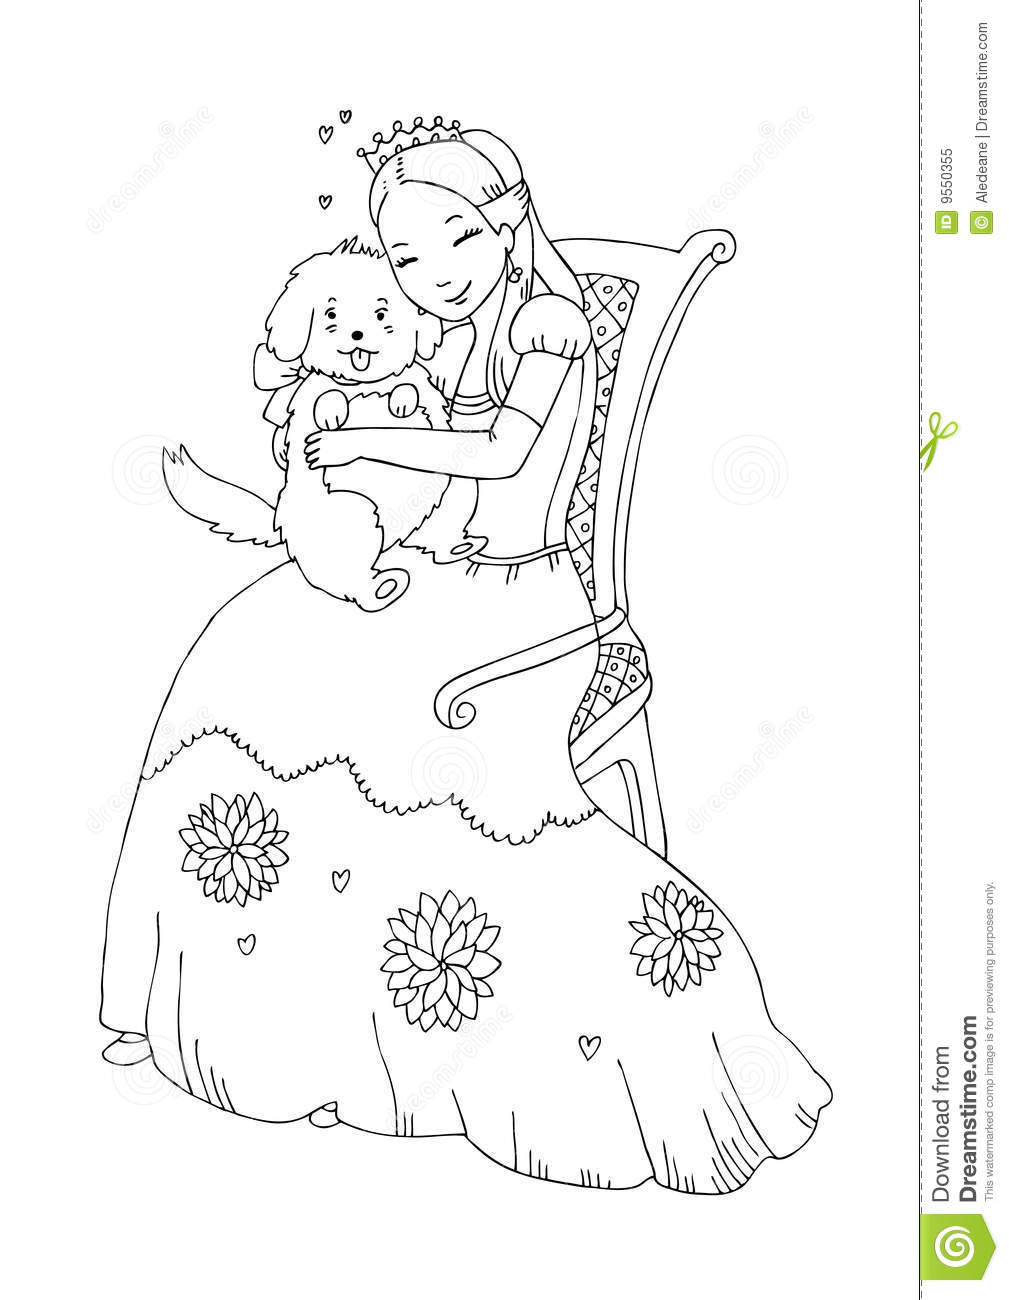 1000 Images About маленькие картинки раскраски On Pinterest Princess Puppy Coloring Pages